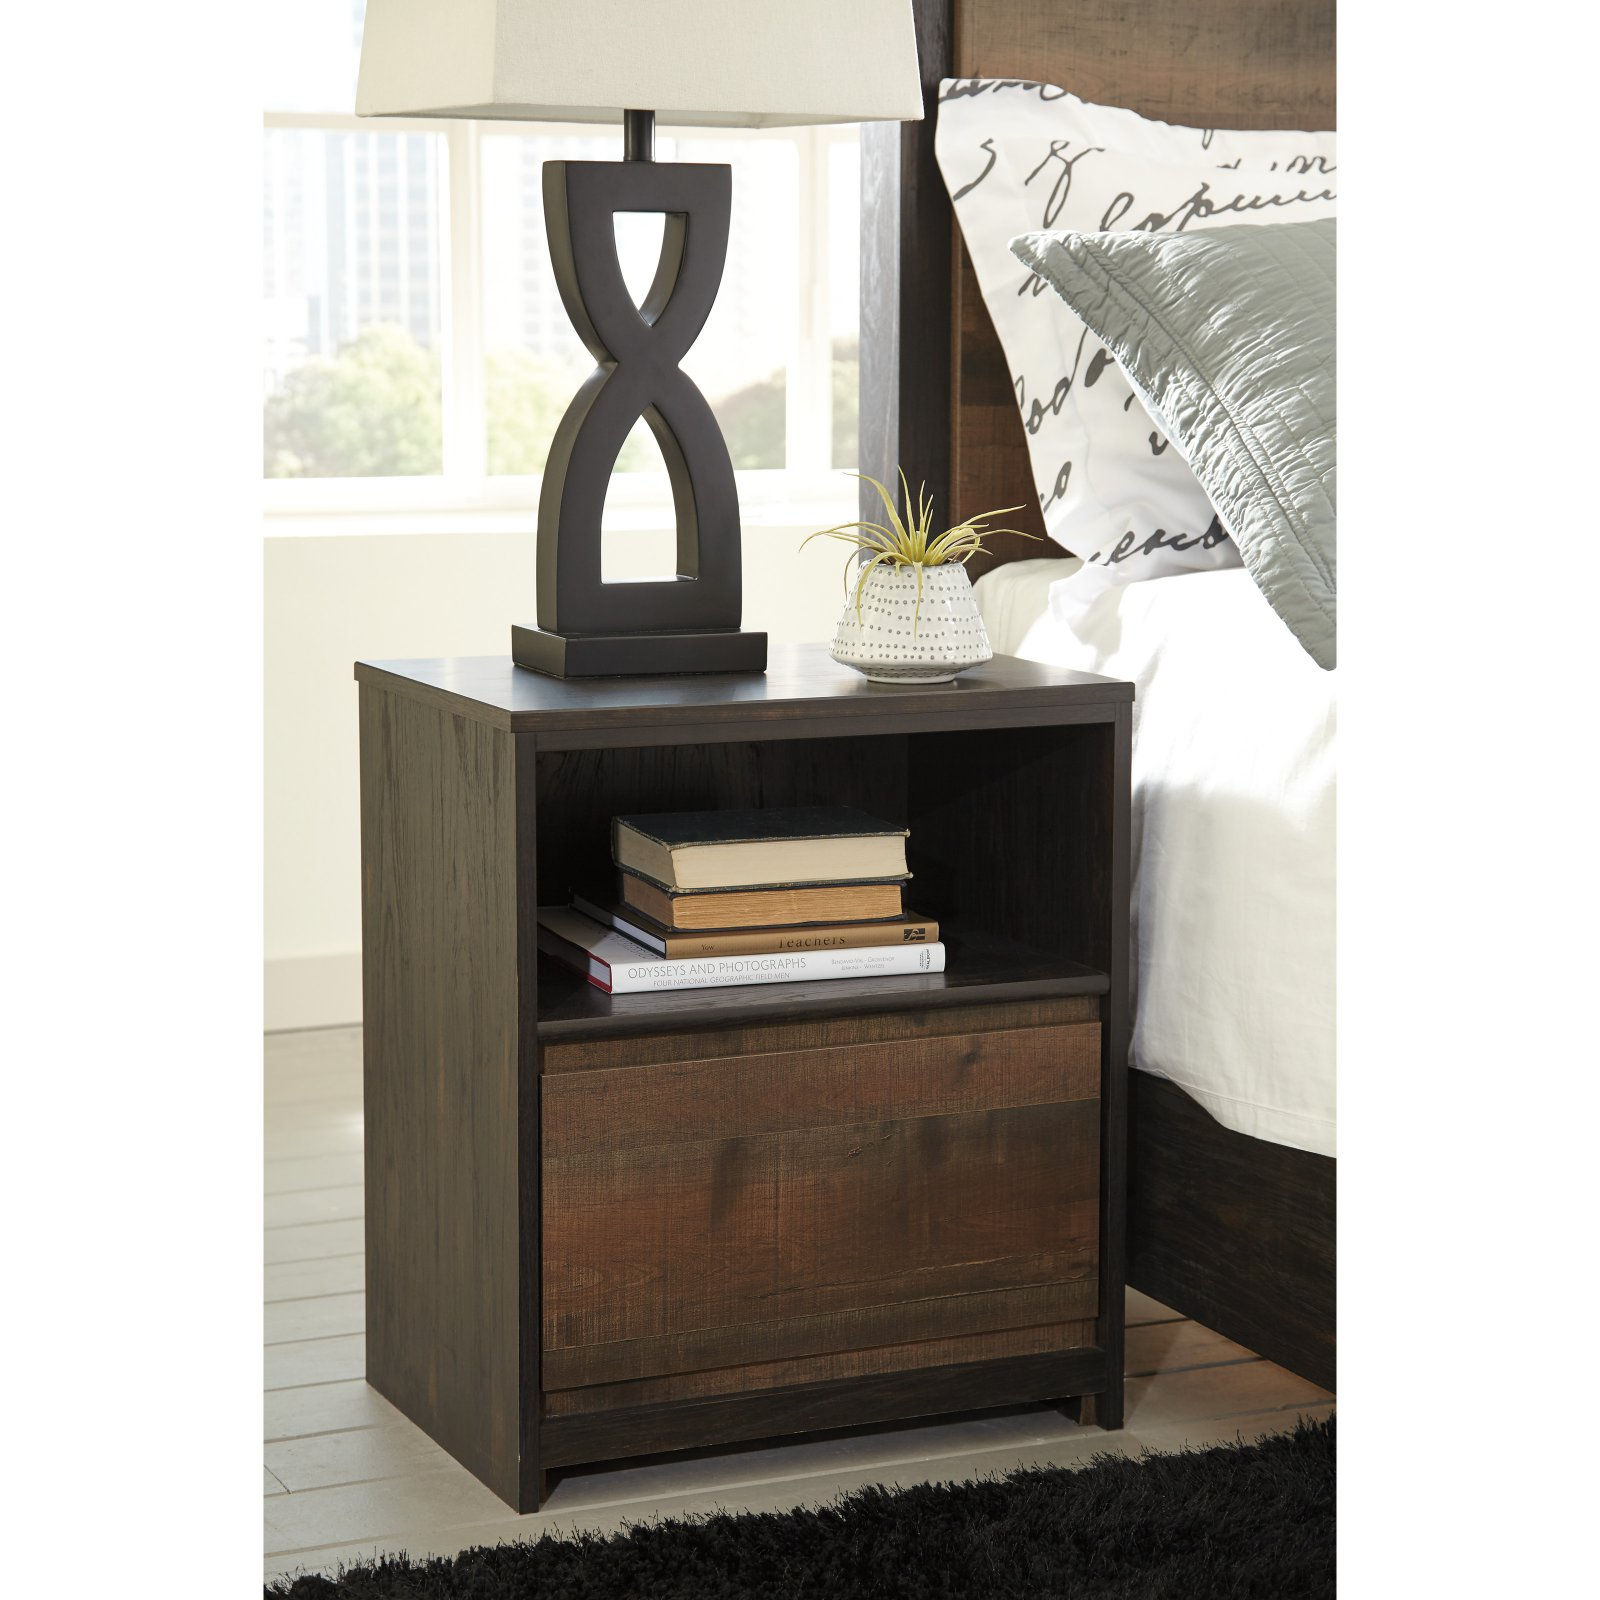 Signature Design by Ashley Windlore Night Stand